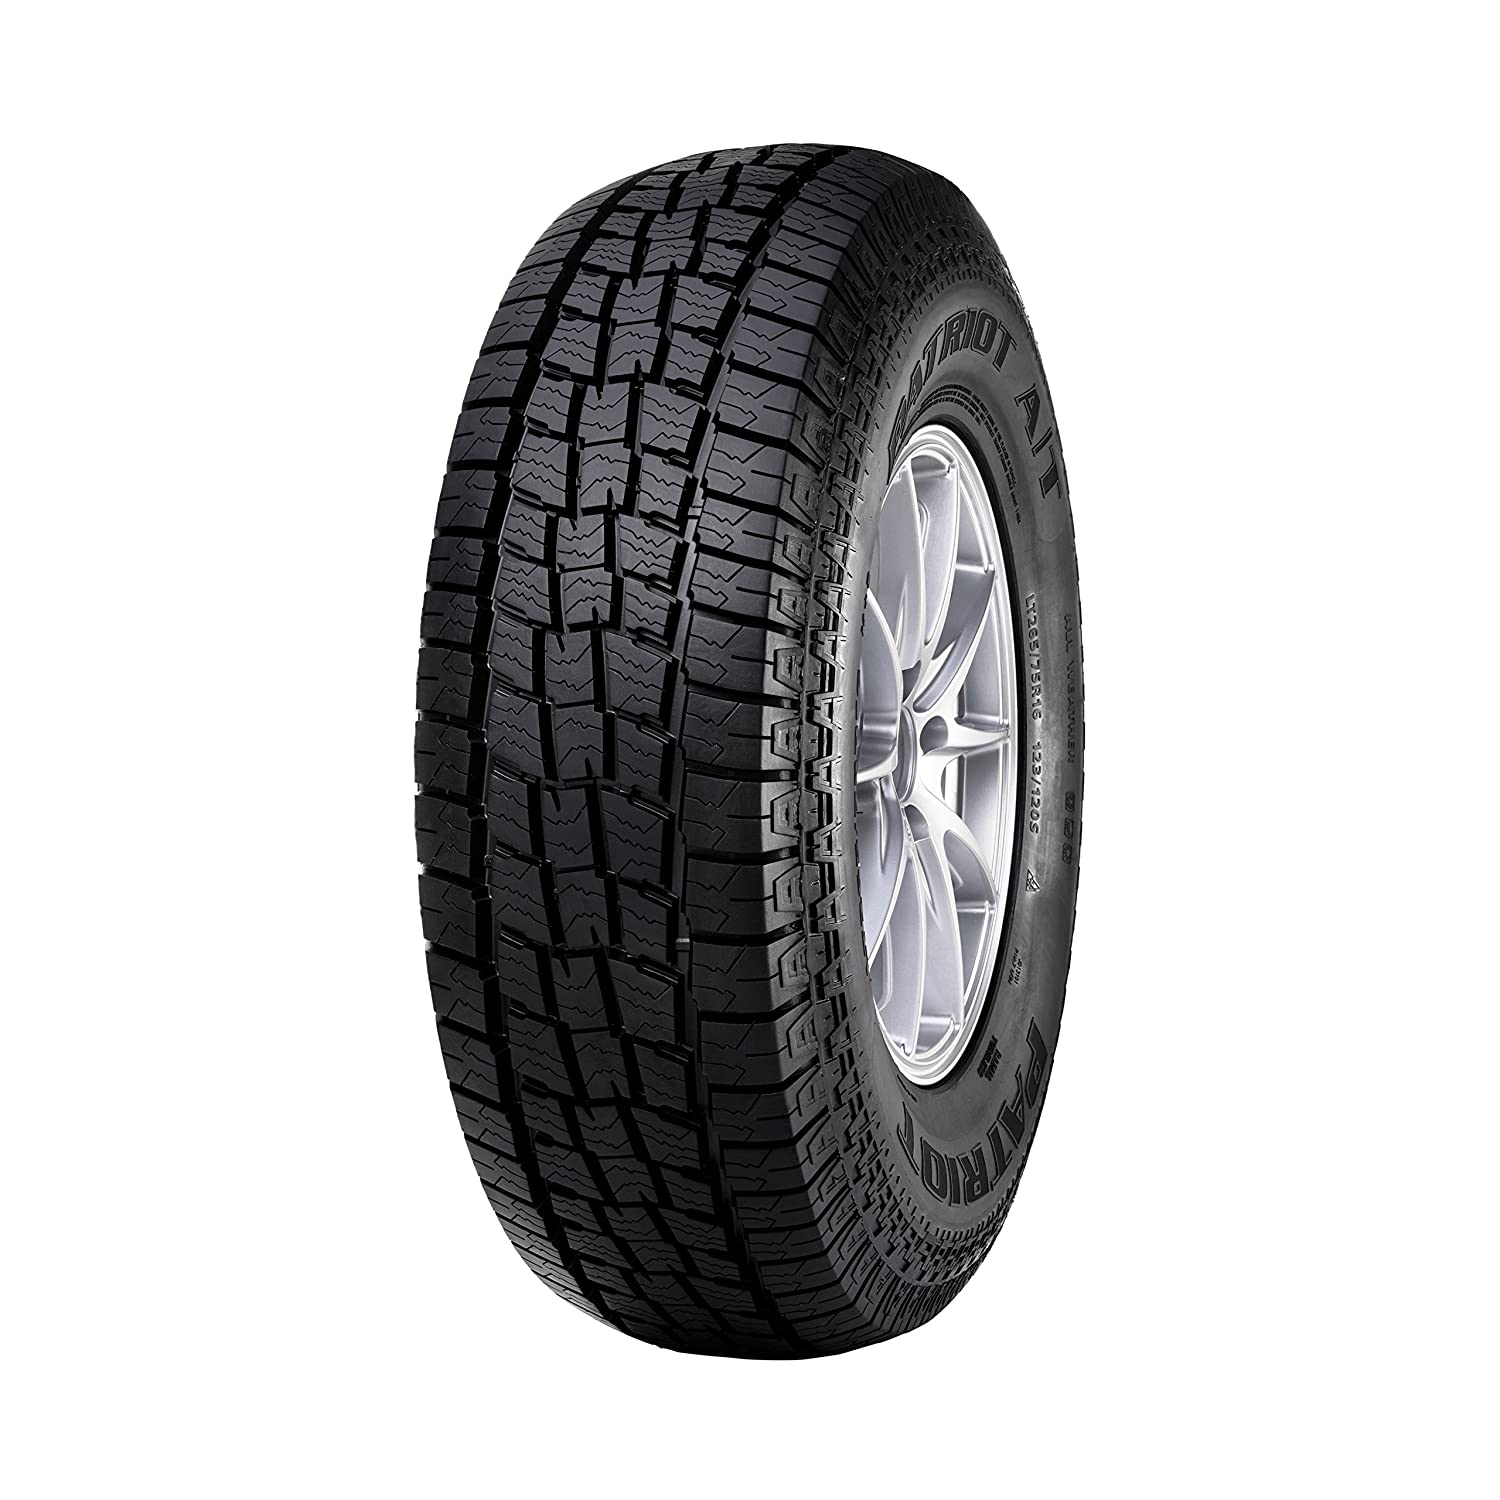 Patriot Tires Patriot AT All-Terrain Radial Tire - LT265/70R17 121S Omni United RSD0069